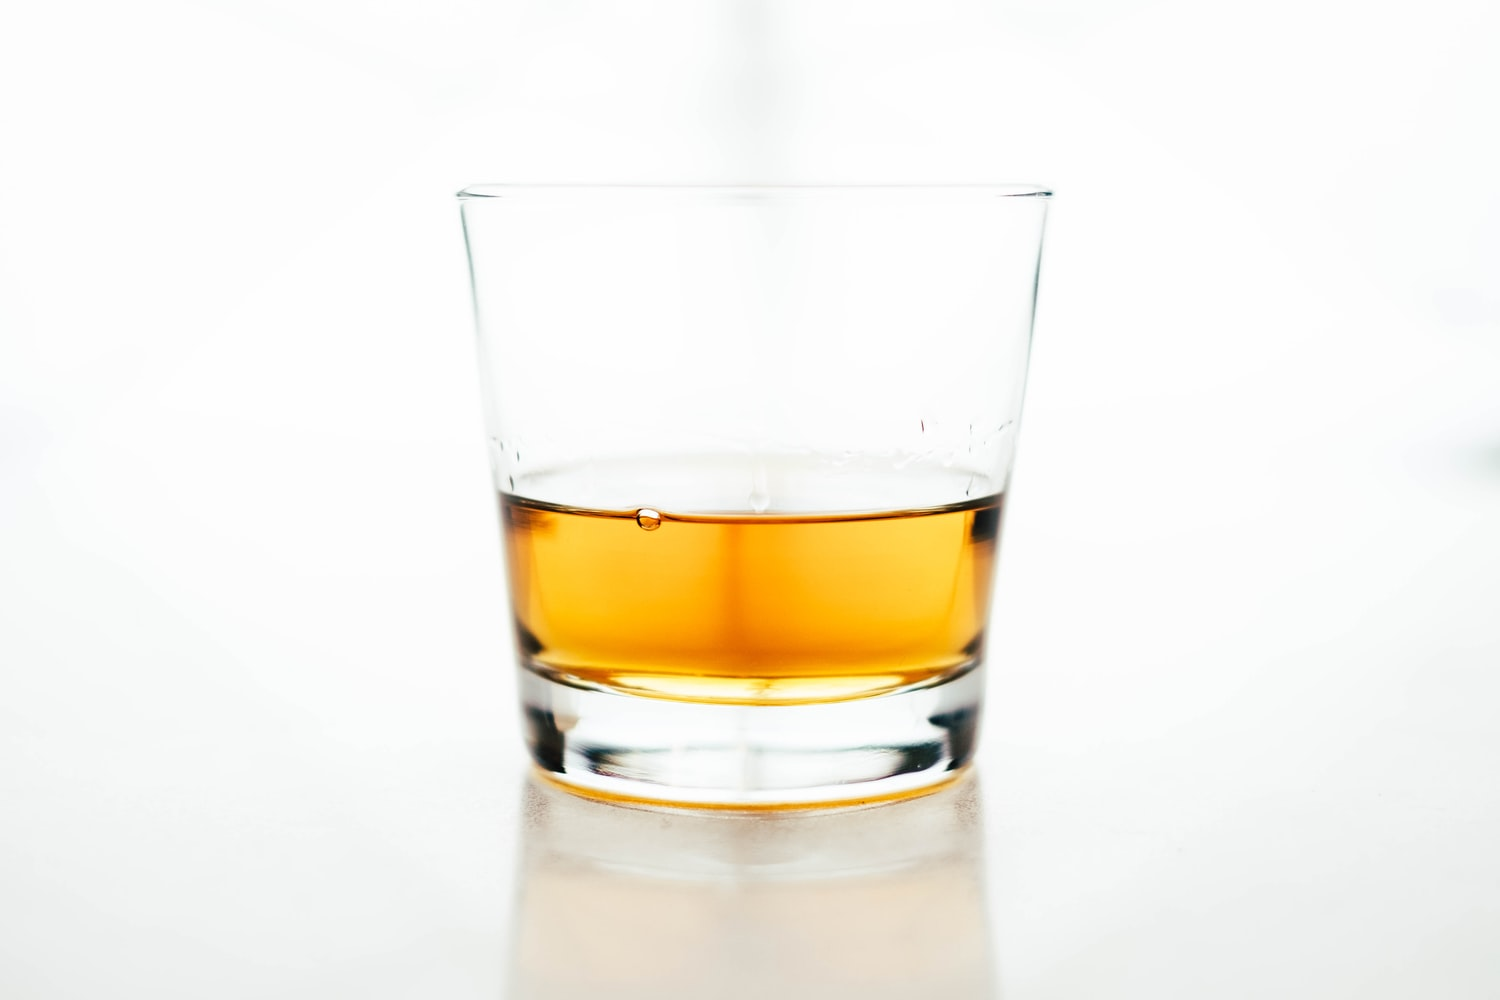 irish whiskey clear rock glass filled with yellow liquid